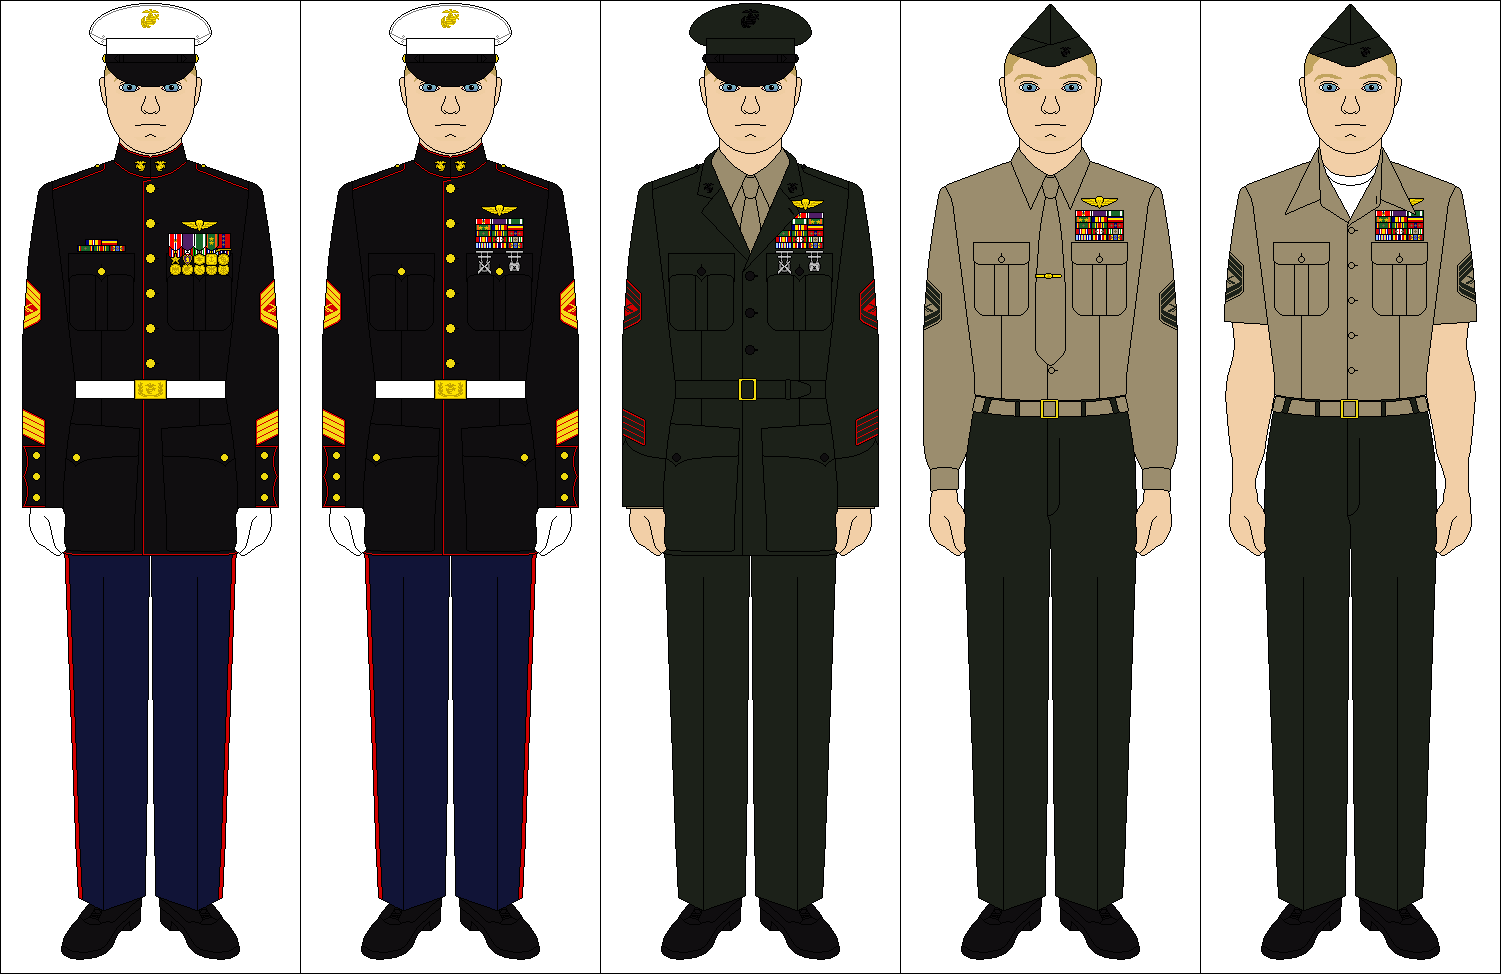 US Marine Corps uniforms by Tenue-de-canada on DeviantArt